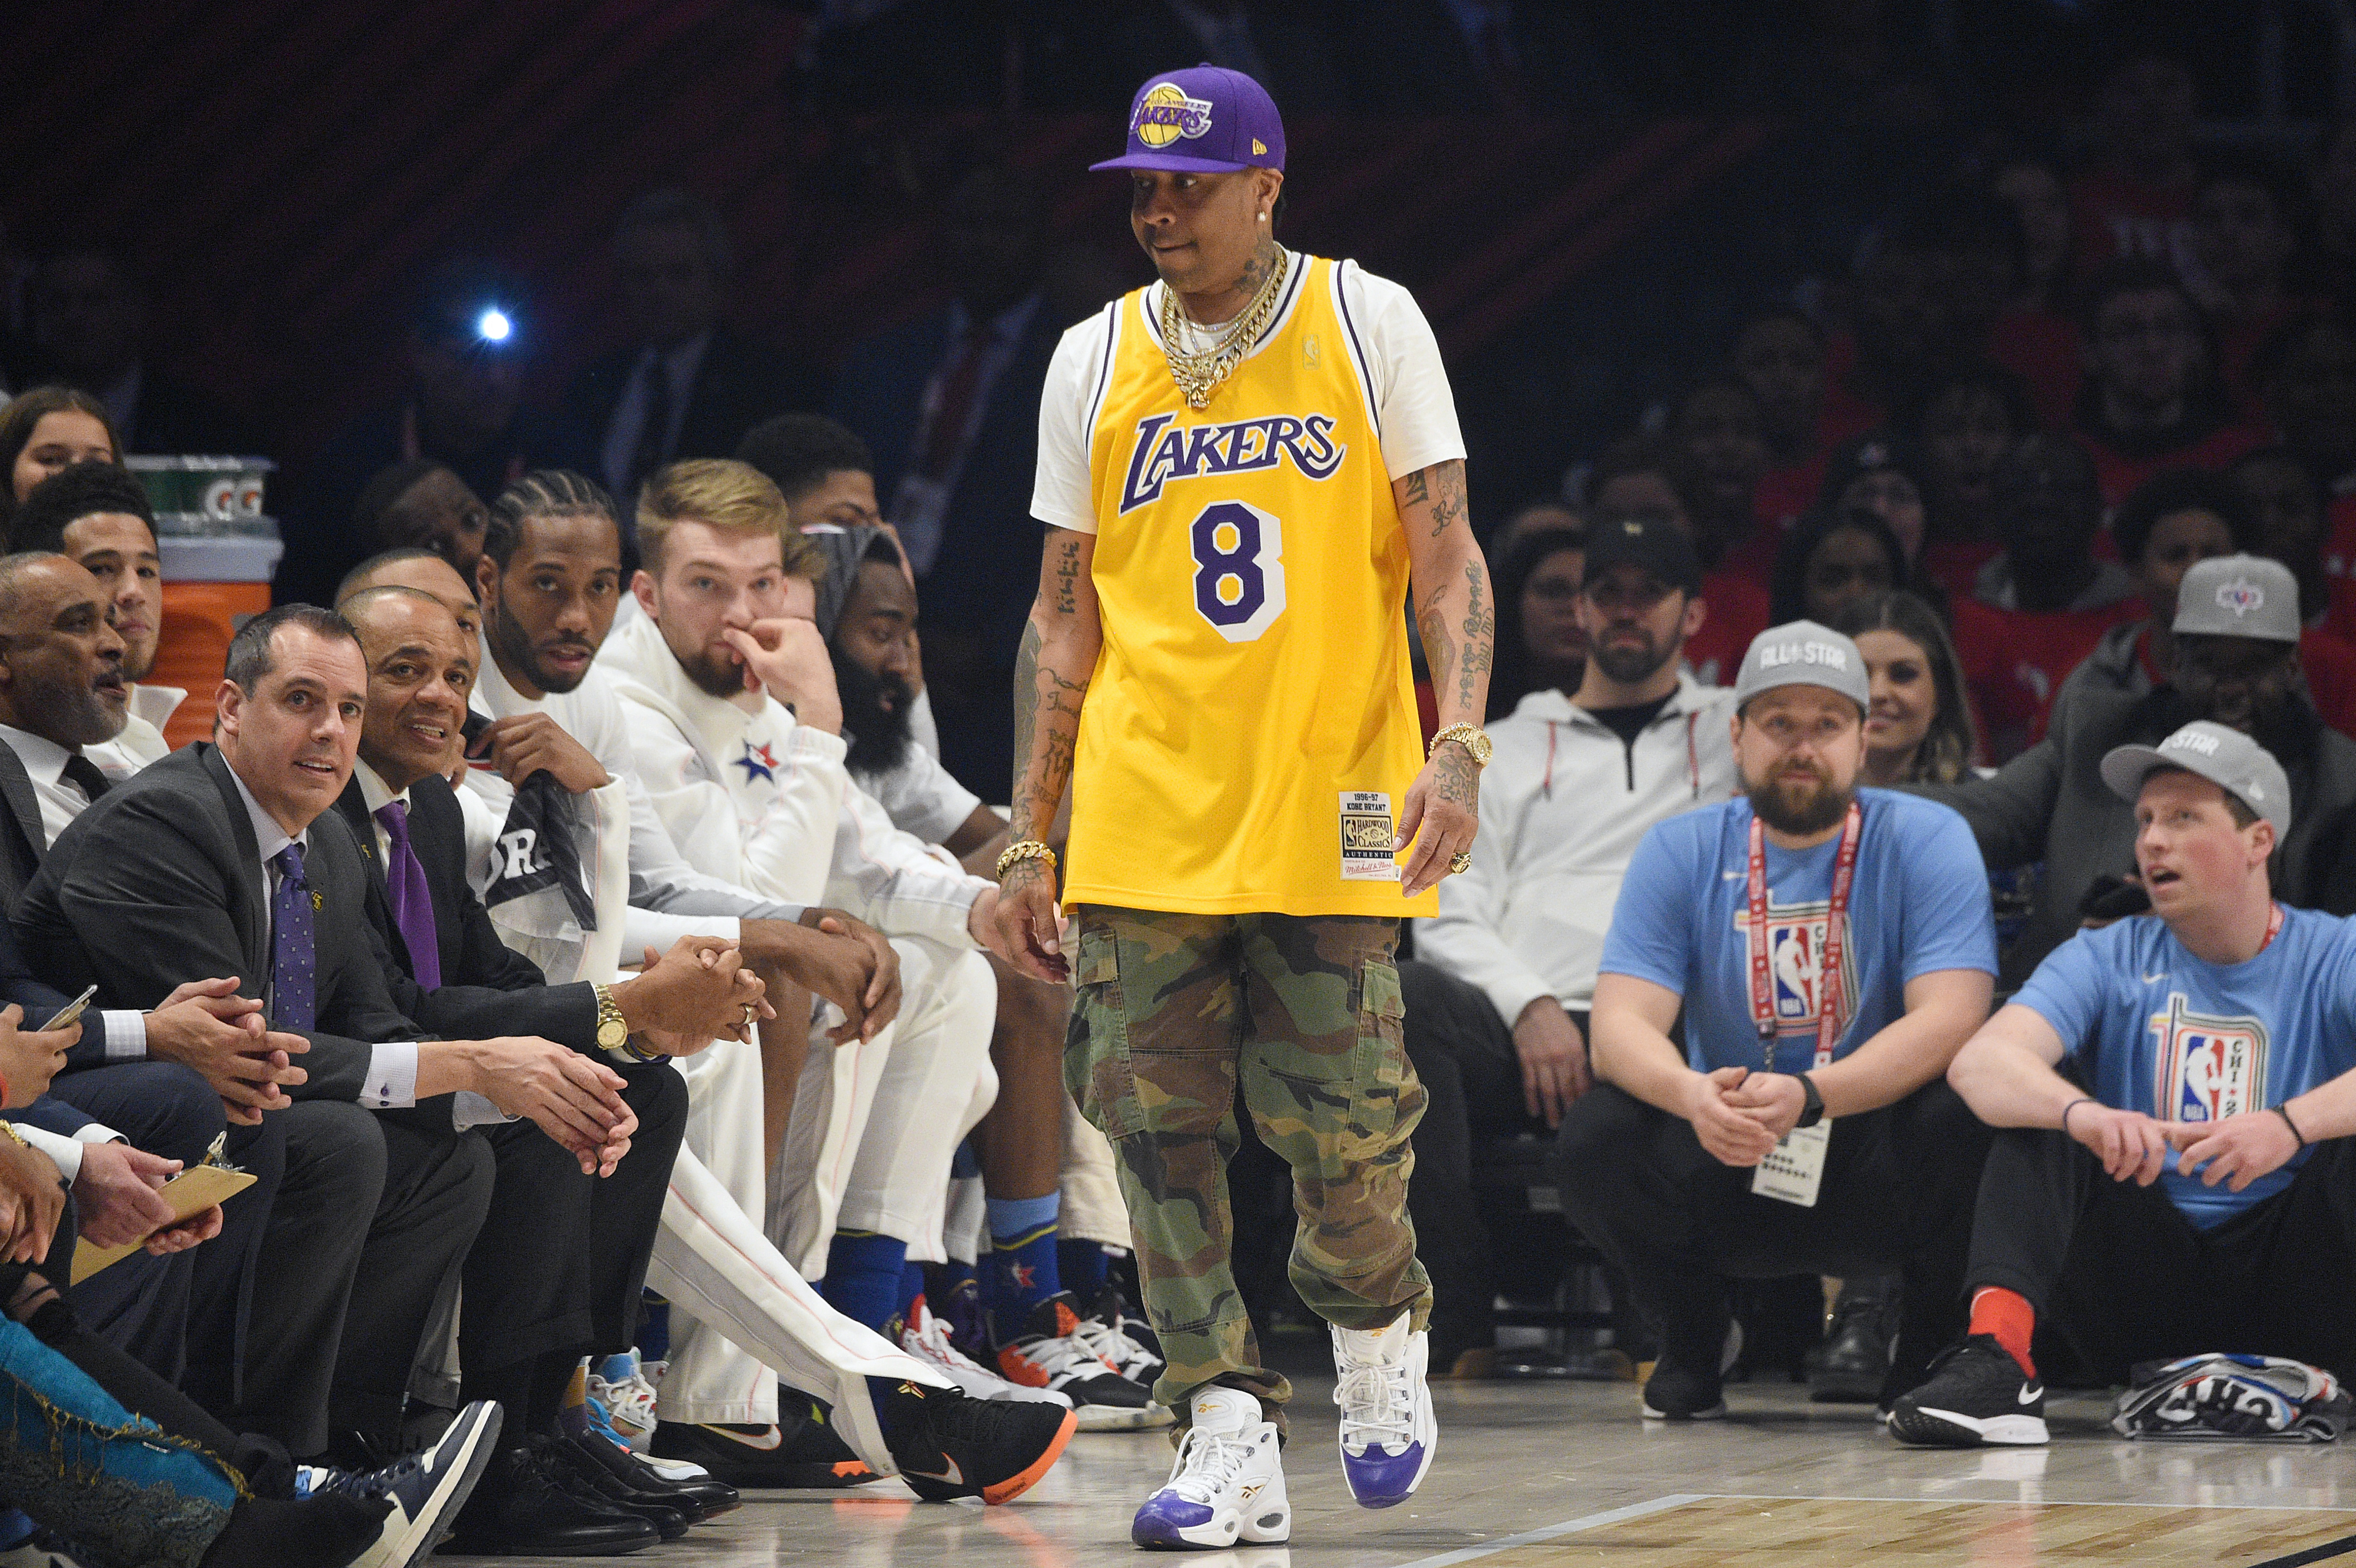 Allen Iverson attends the 2020 NBA All-Star Game